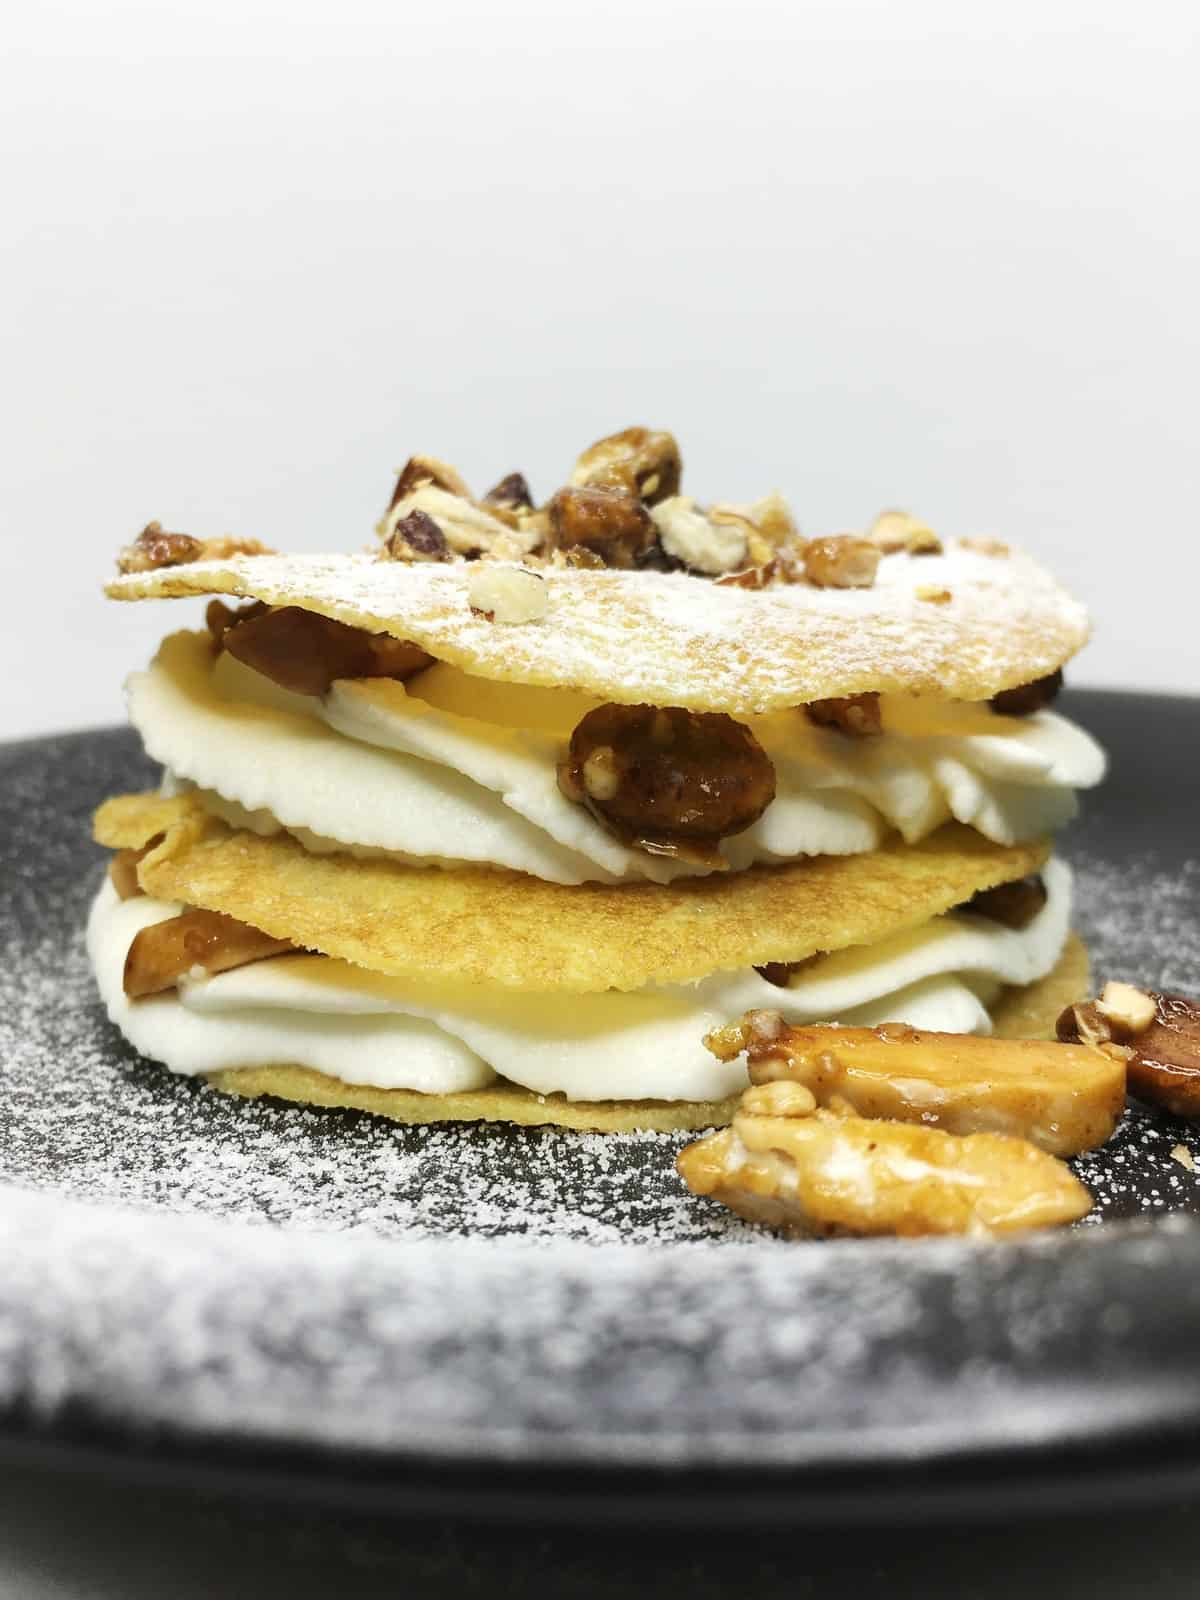 A single French mille crepe (crispy crepes Millefeuille) served on a black serving platter